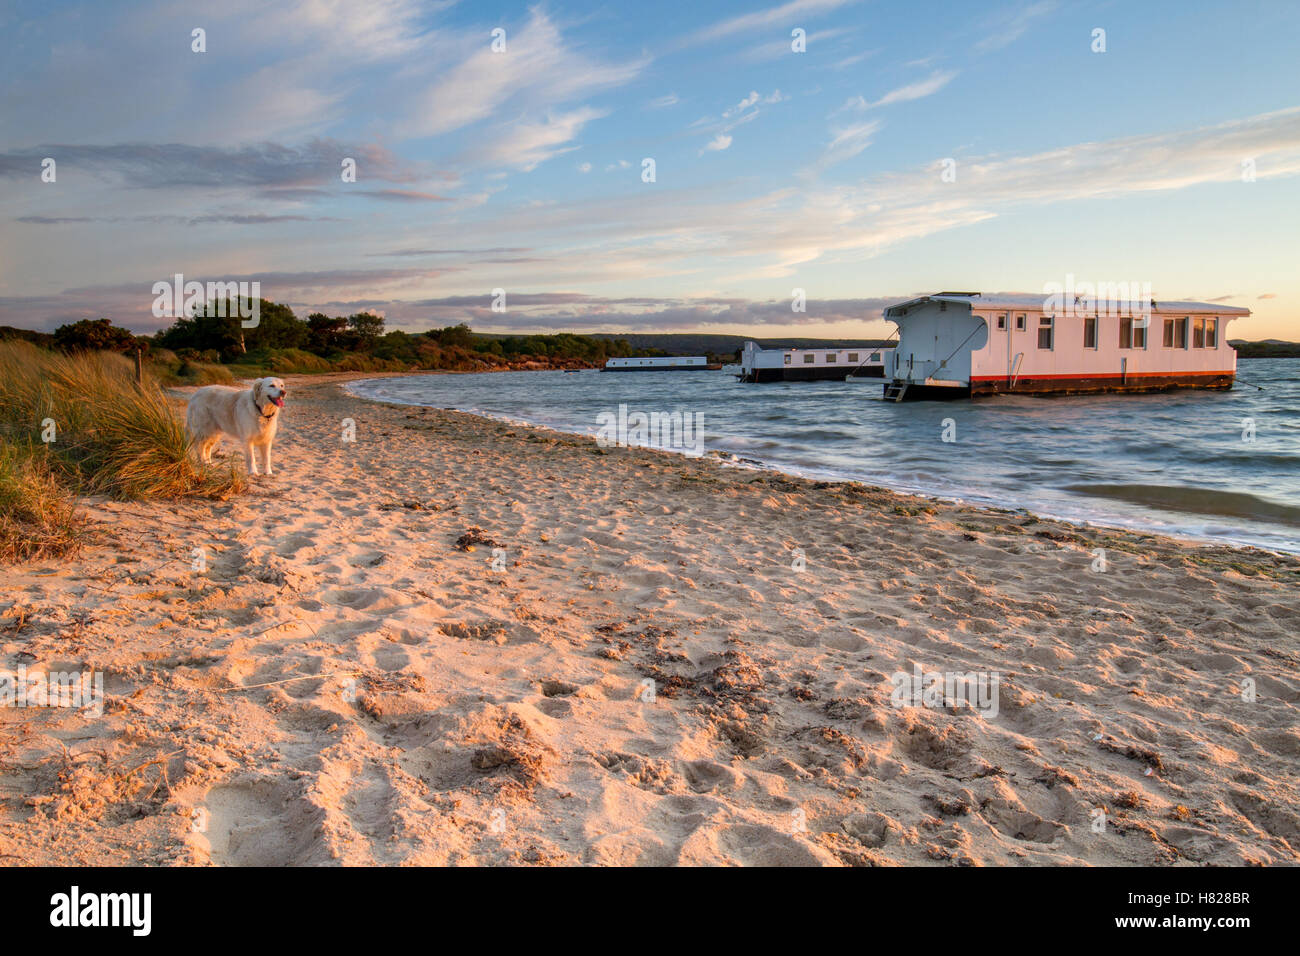 happy golden retriever dog standing on beach watching the sun setting over the bay with houseboat - Stock Image